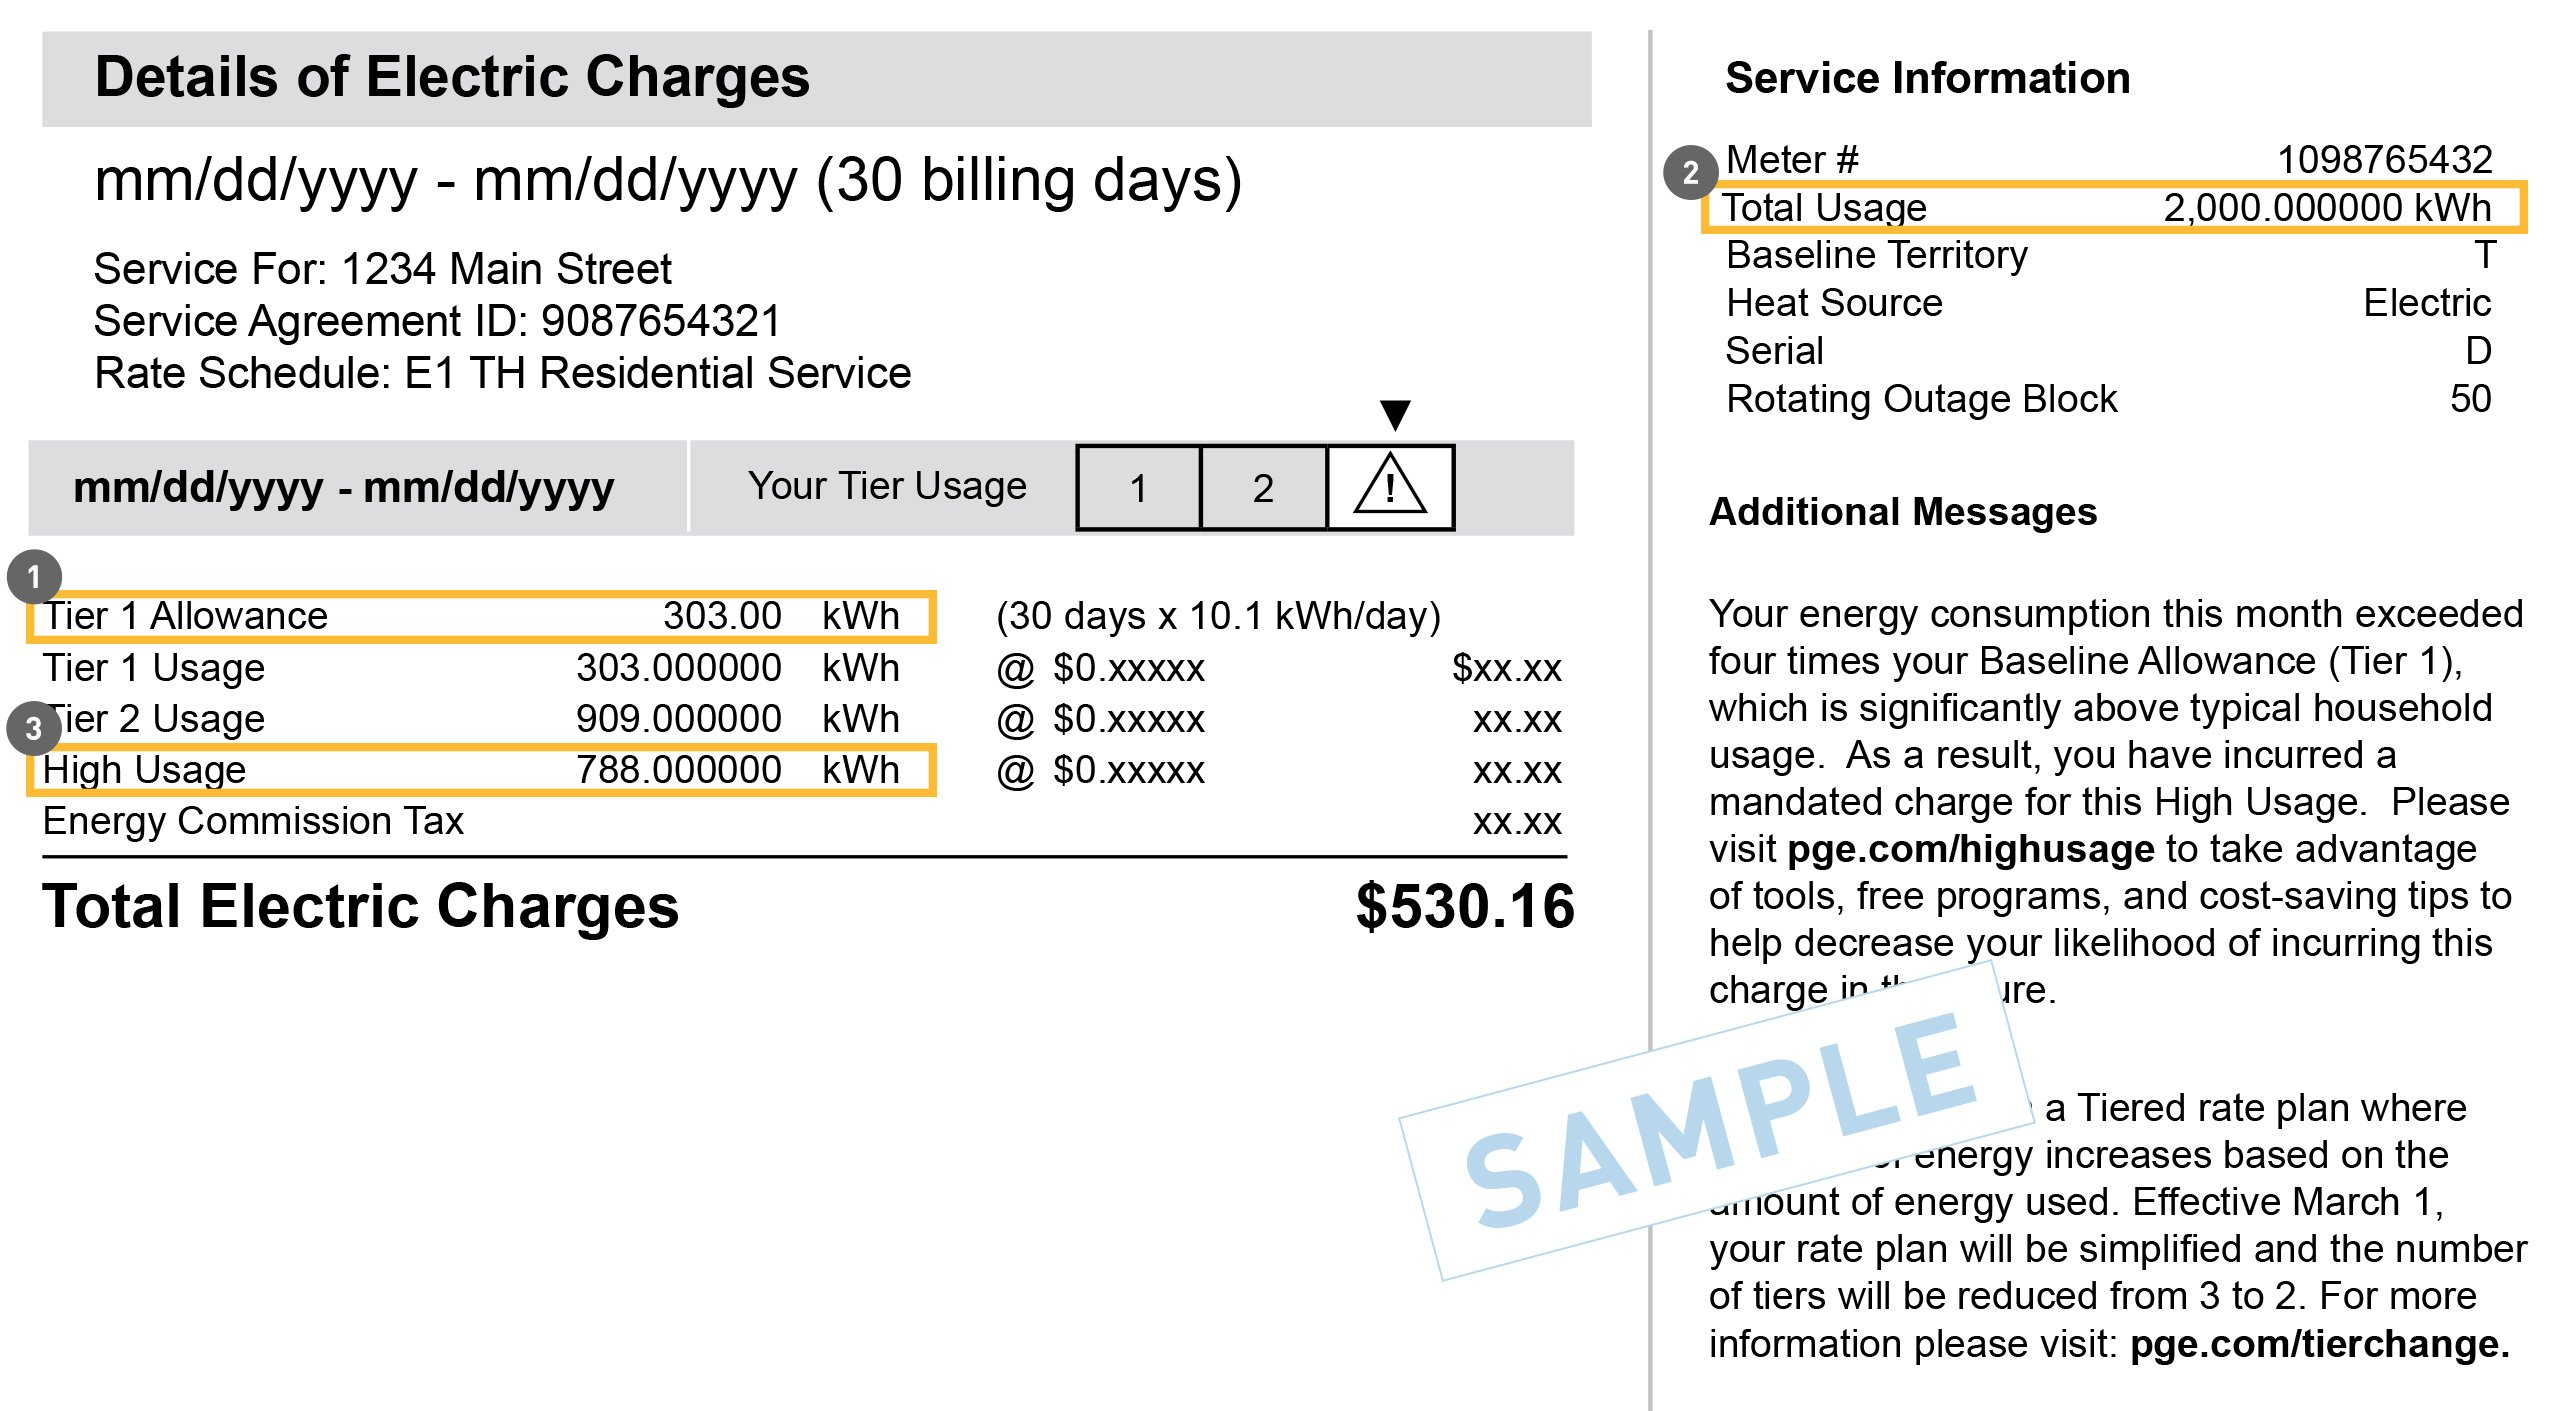 The PG&E High Usage Surcharge